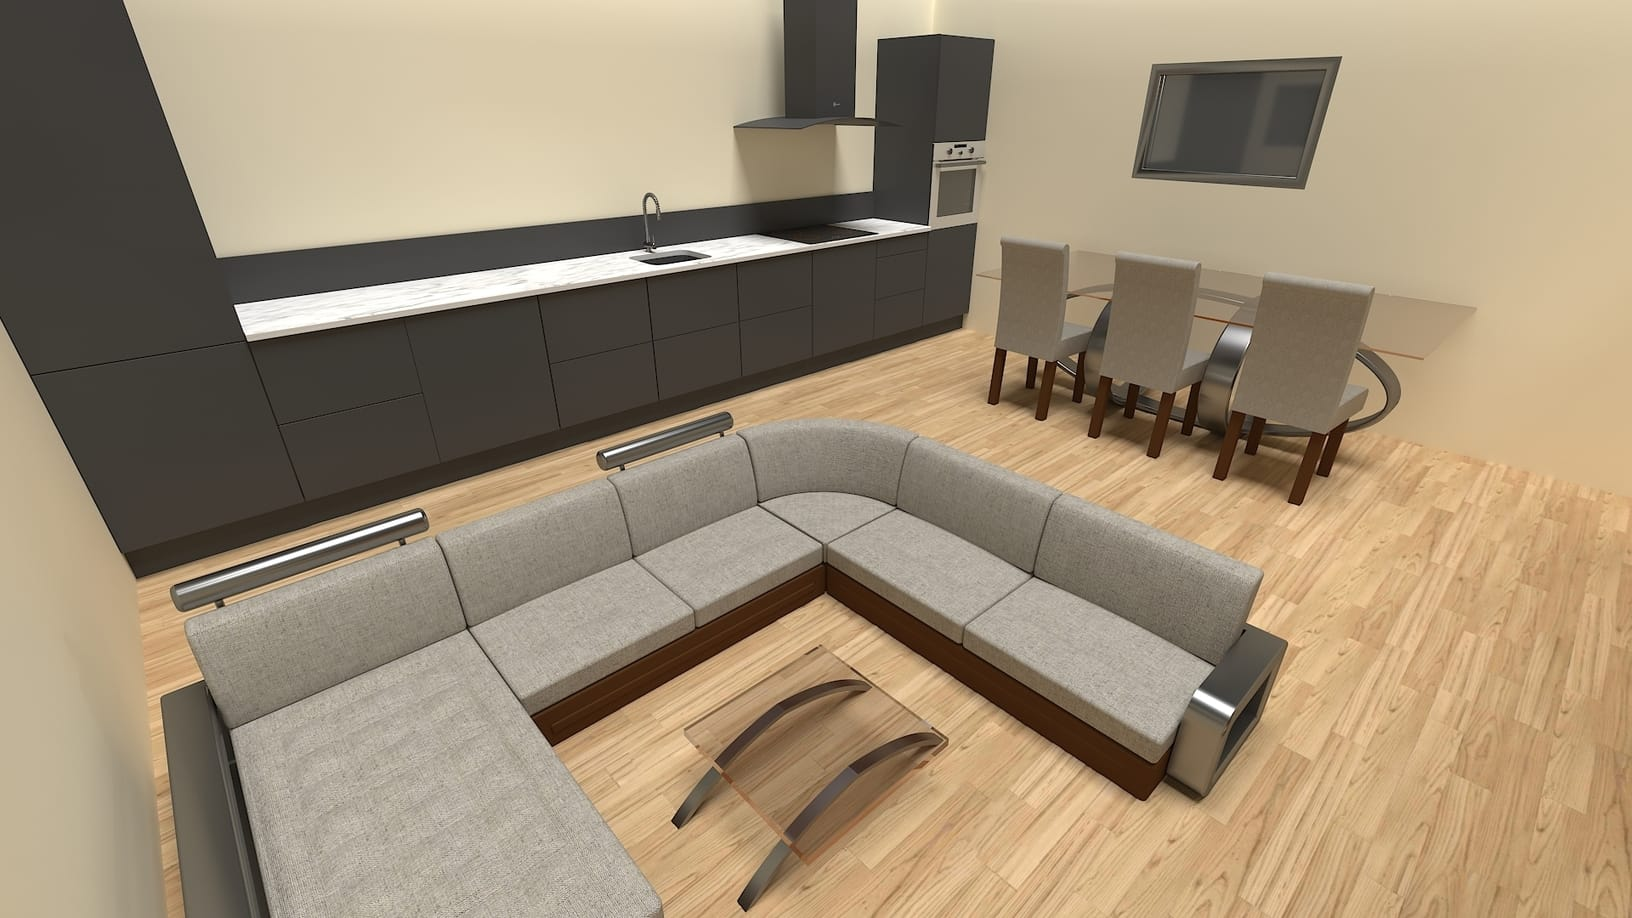 3D Product Visualisation of a kitchen and living room